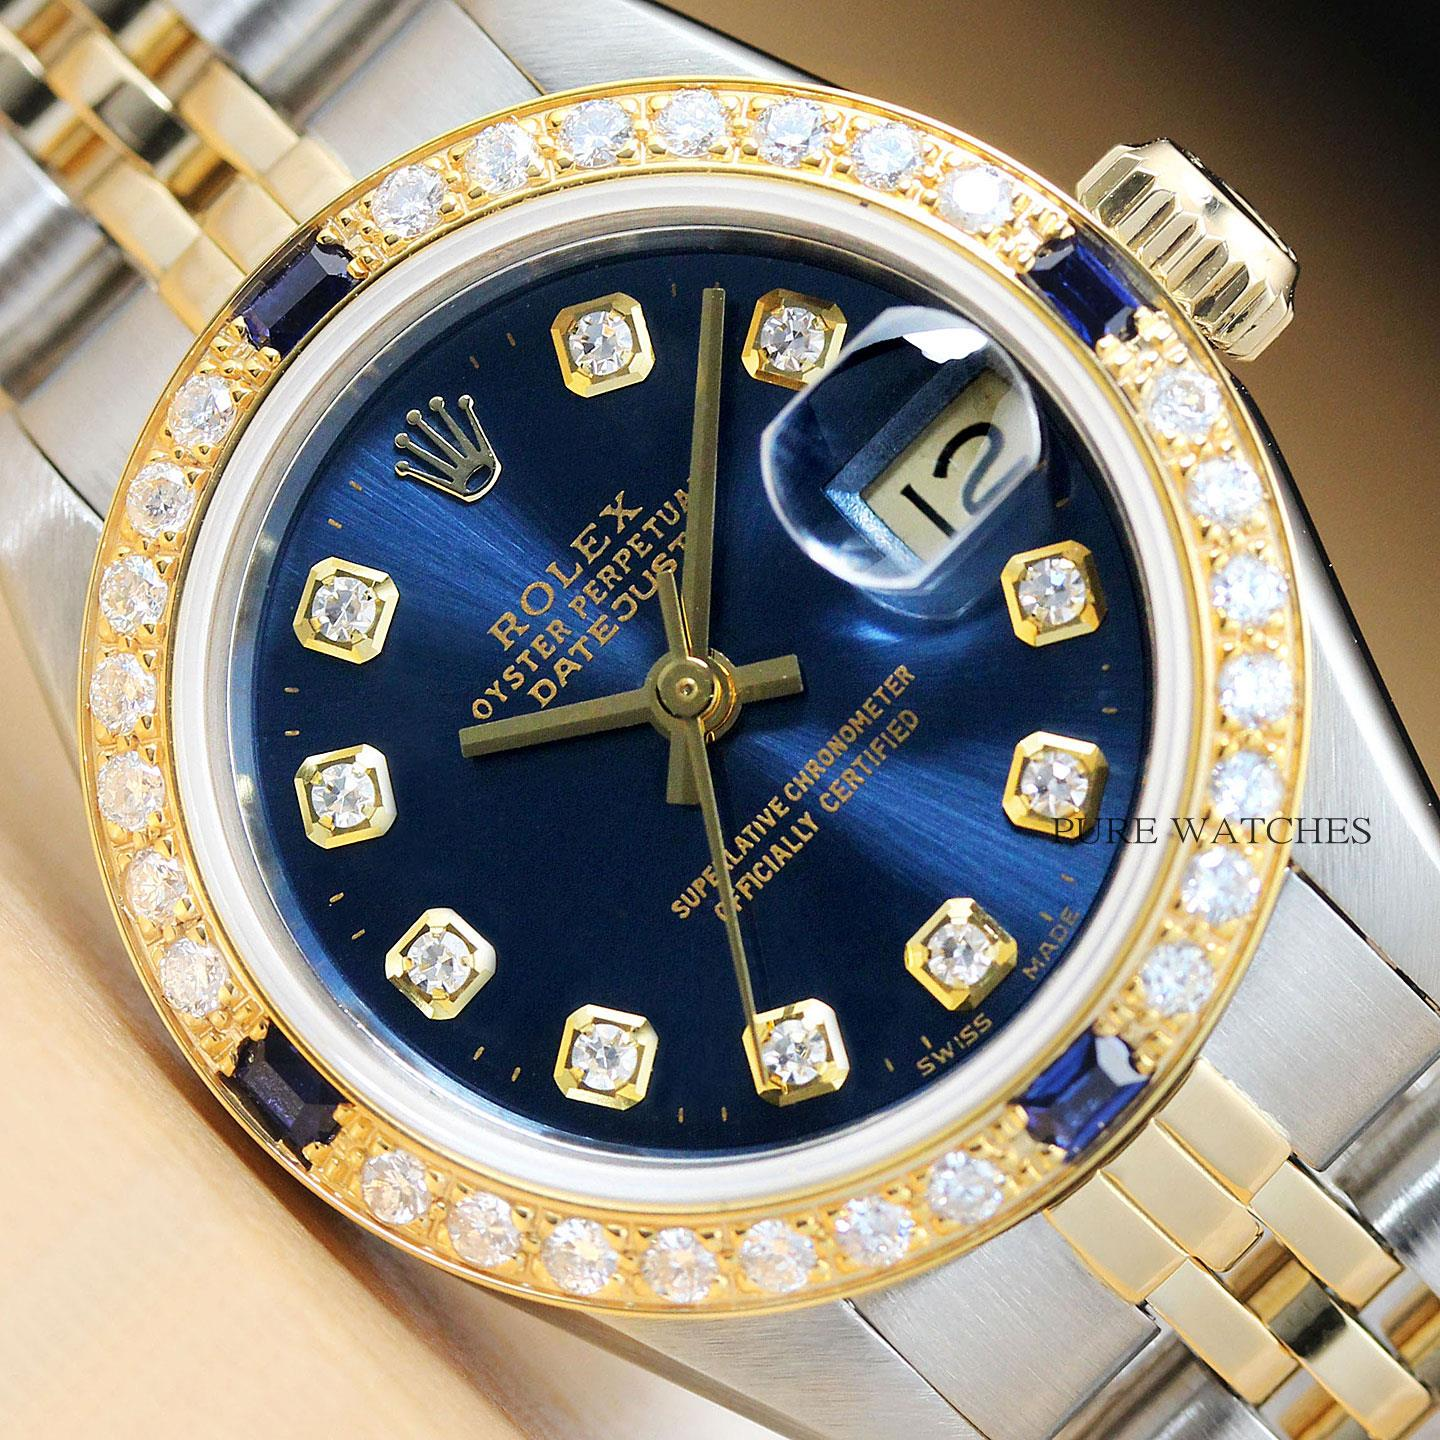 Rolexs Watches Details About Rolex Ladies Datejust 18k Yellow Gold Diamond Sapphire Steel Blue Dial Watch